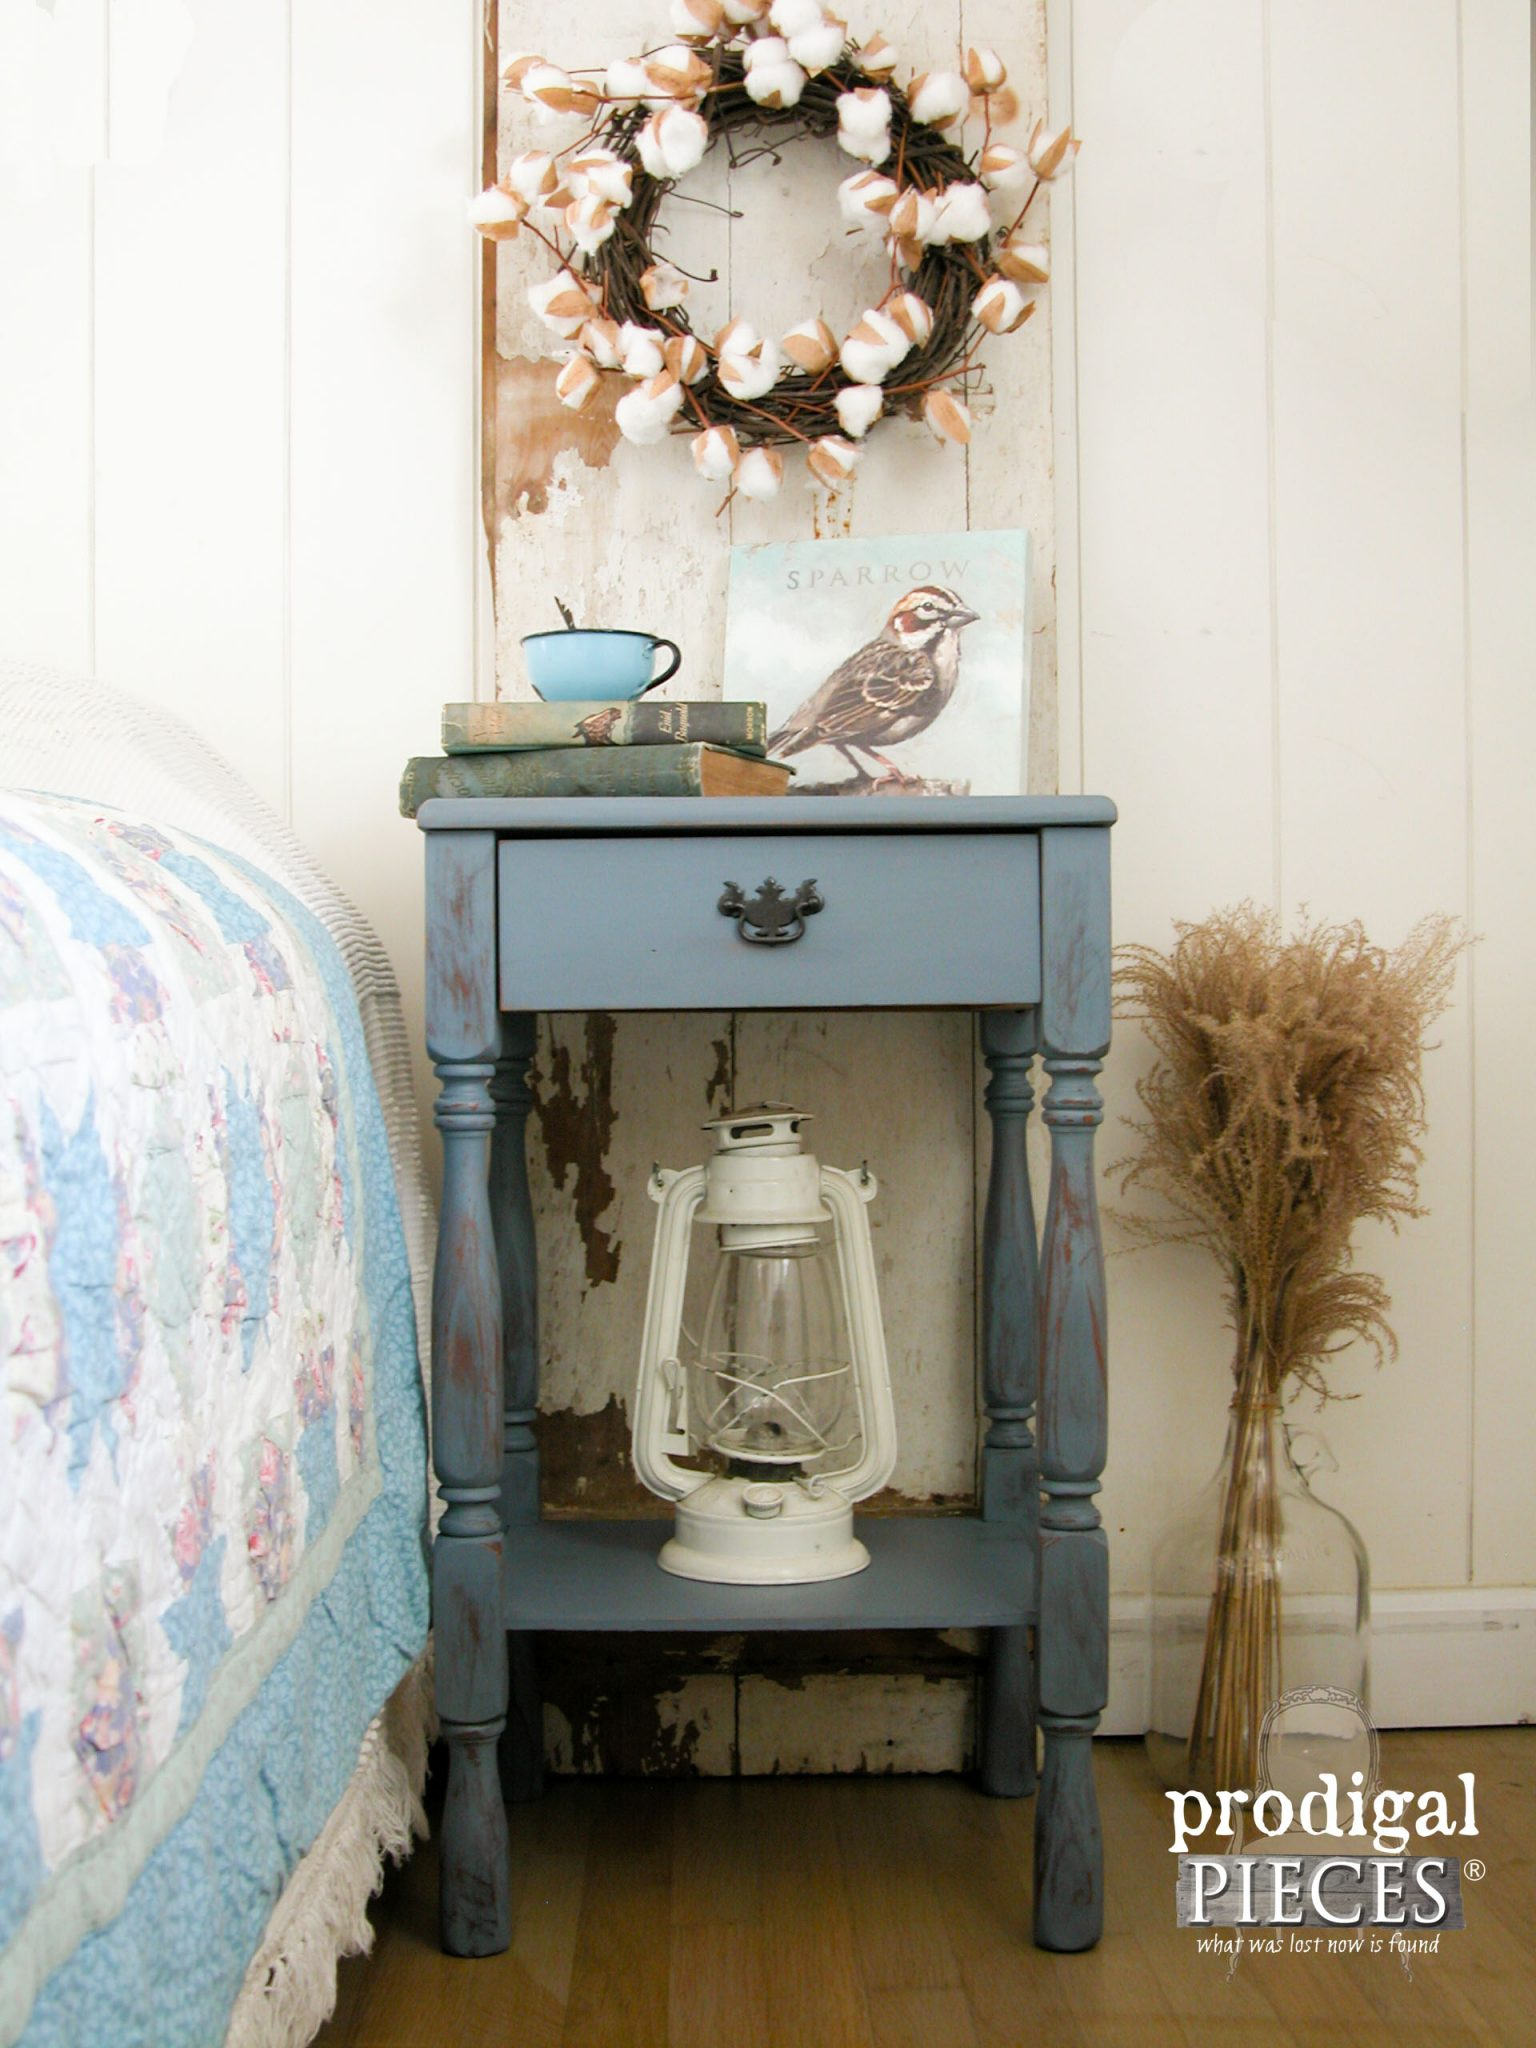 Rustic Farmhouse Country Blue Side Table by Prodigal Pieces | prodigalpieces.com